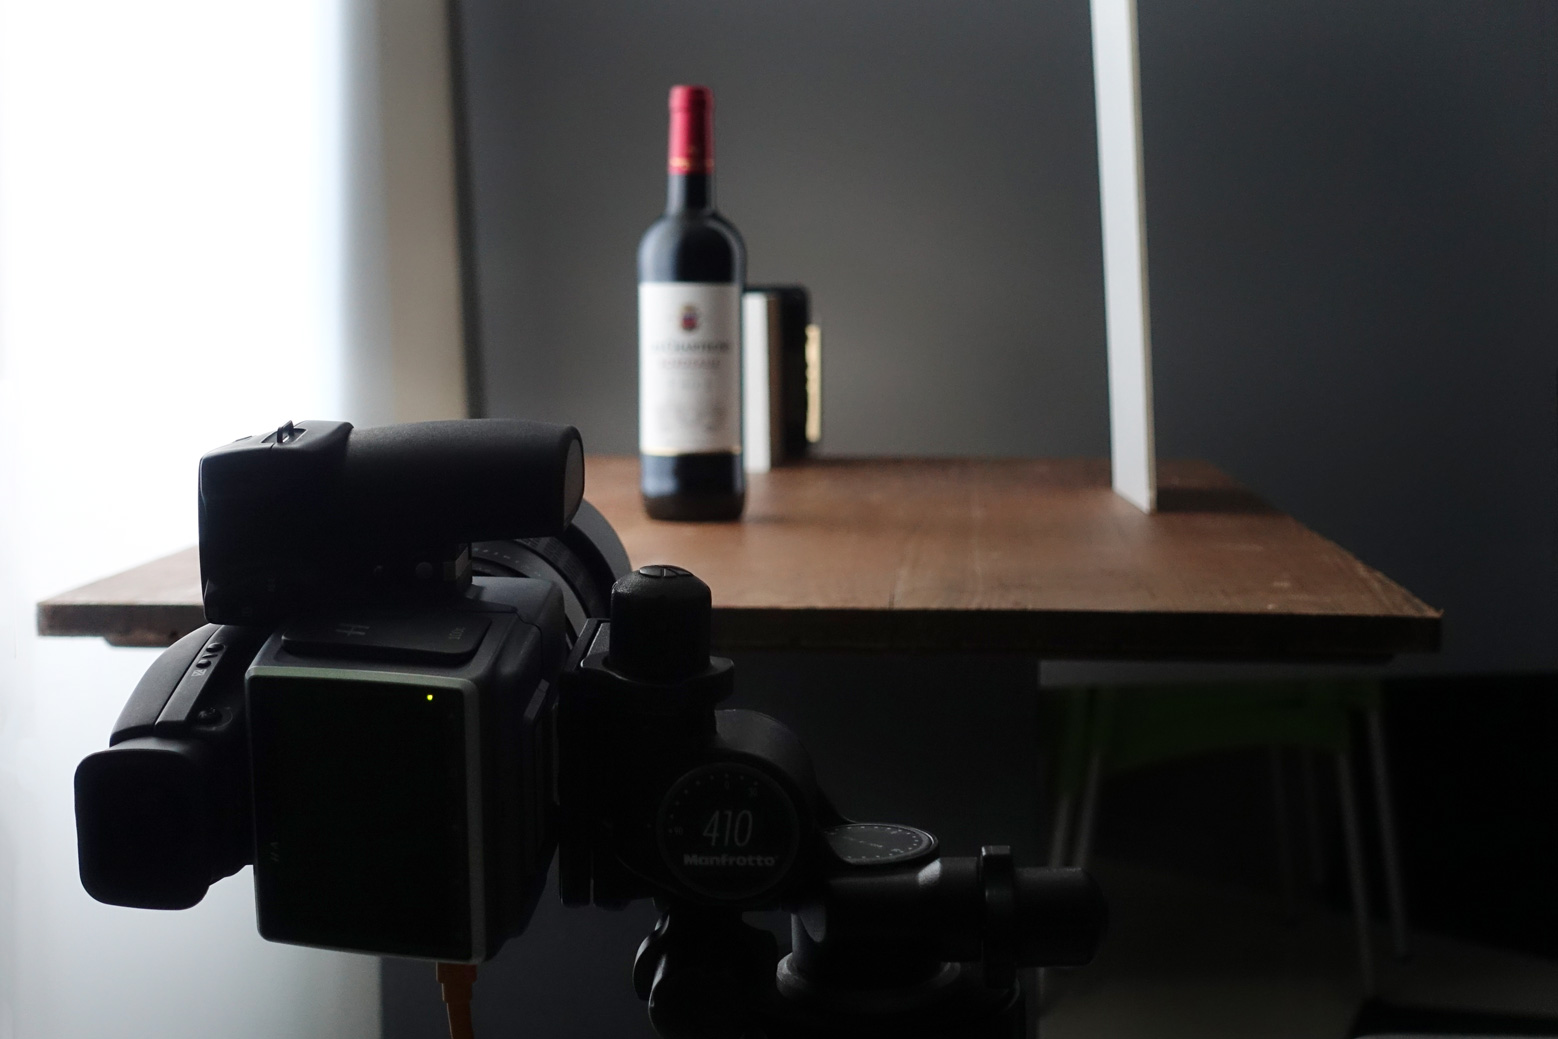 Natural light product photography at home